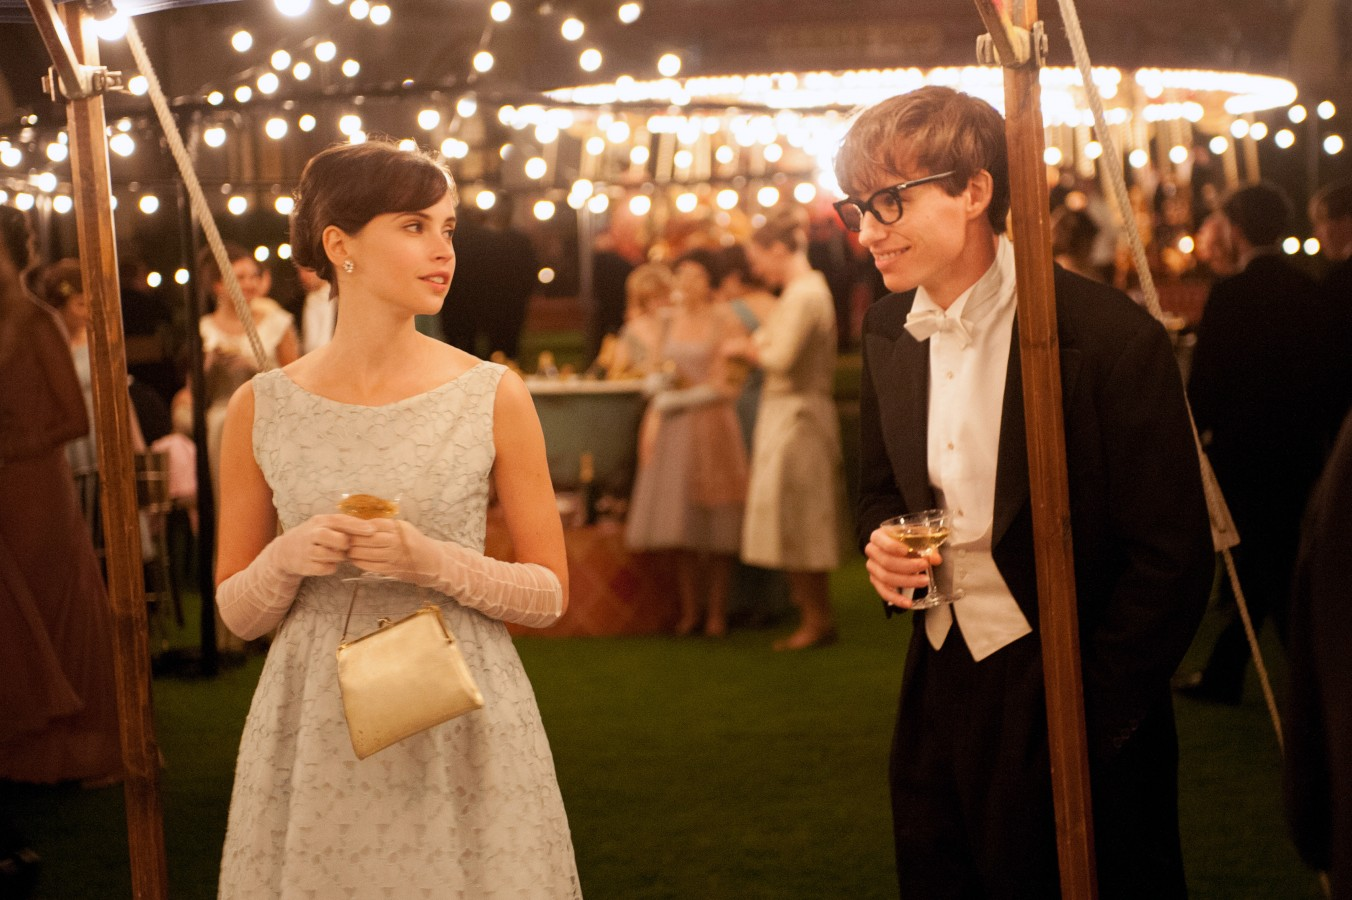 theory of everything birtatlibireksi 2